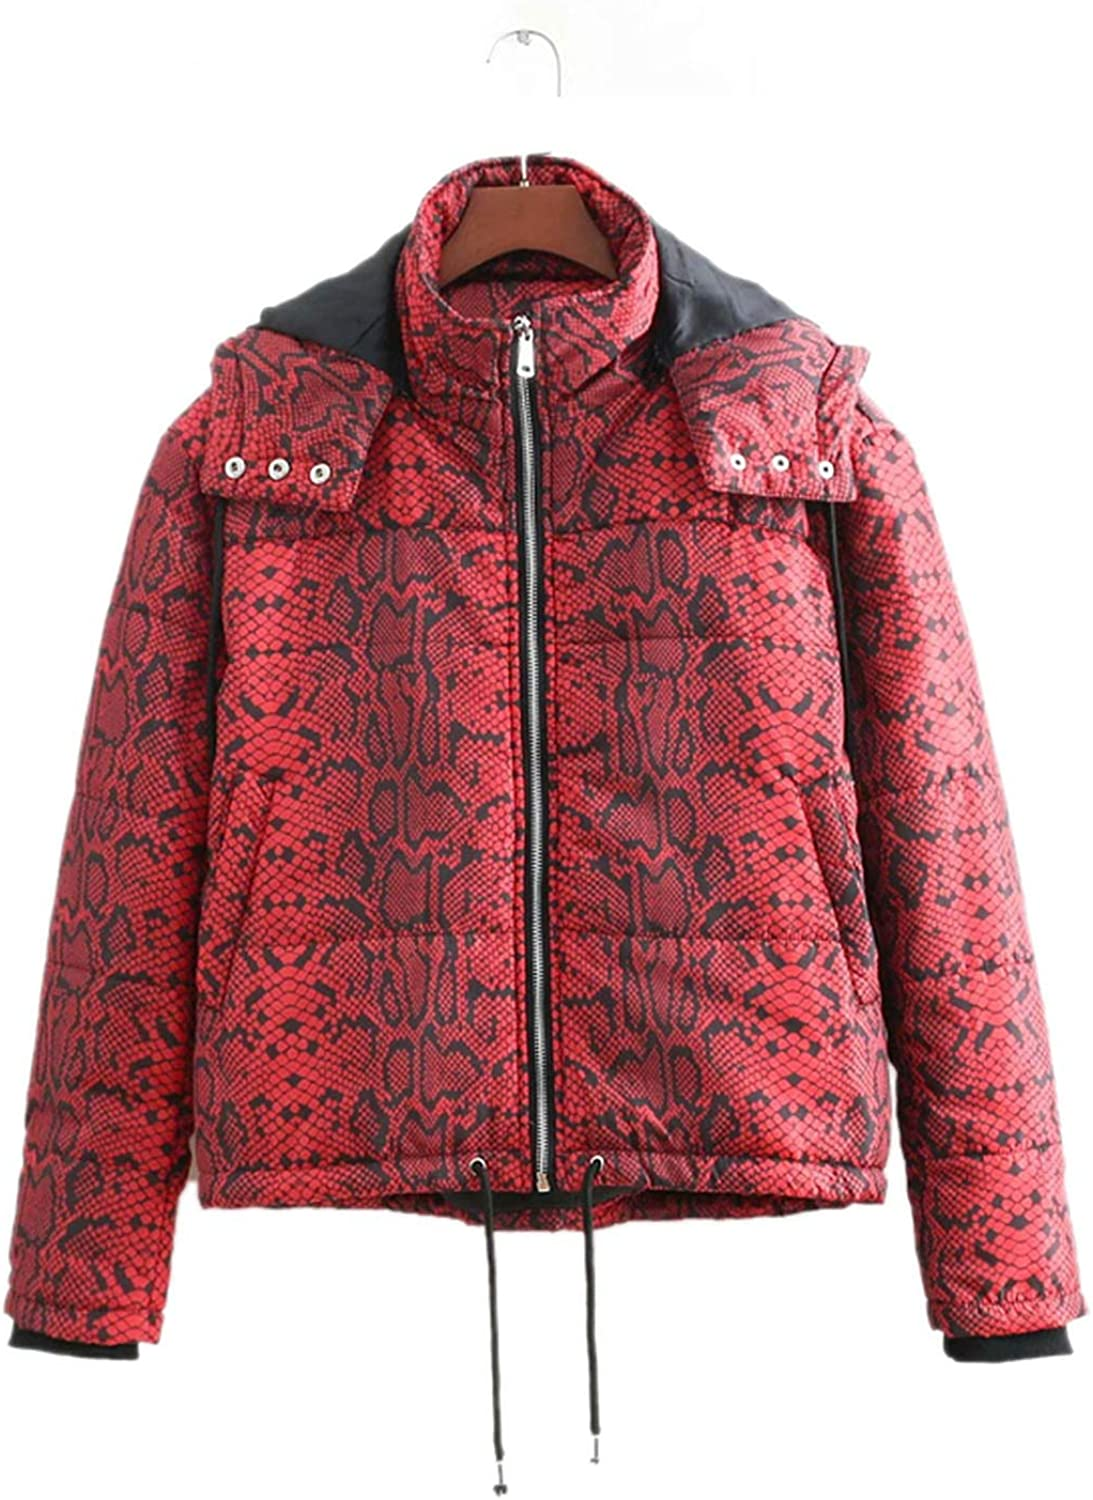 Brave pinkmary Red Snake Skin Print Parkas Winter Women Warm Jacket Cotton Padded Coat Feminine Outerwear